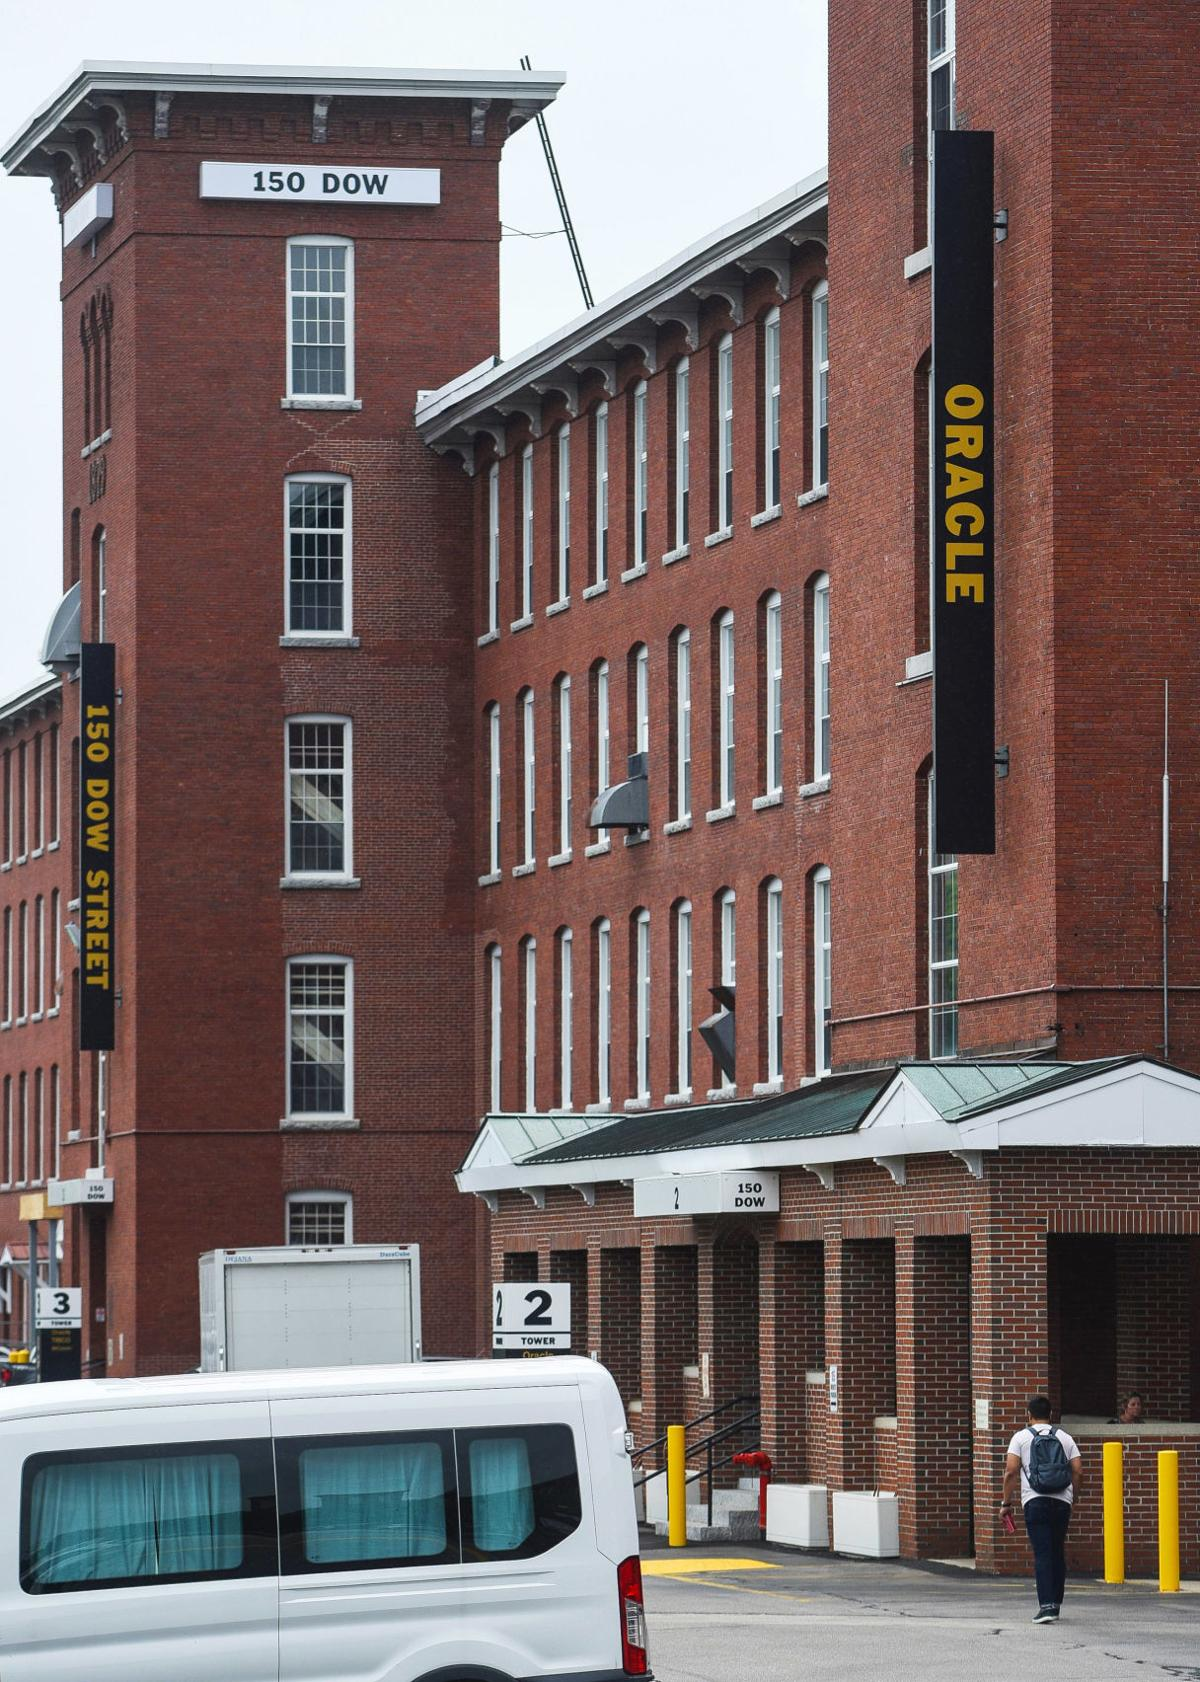 Oracle + Dyn cuts dozens of workers in Manchester Millyard